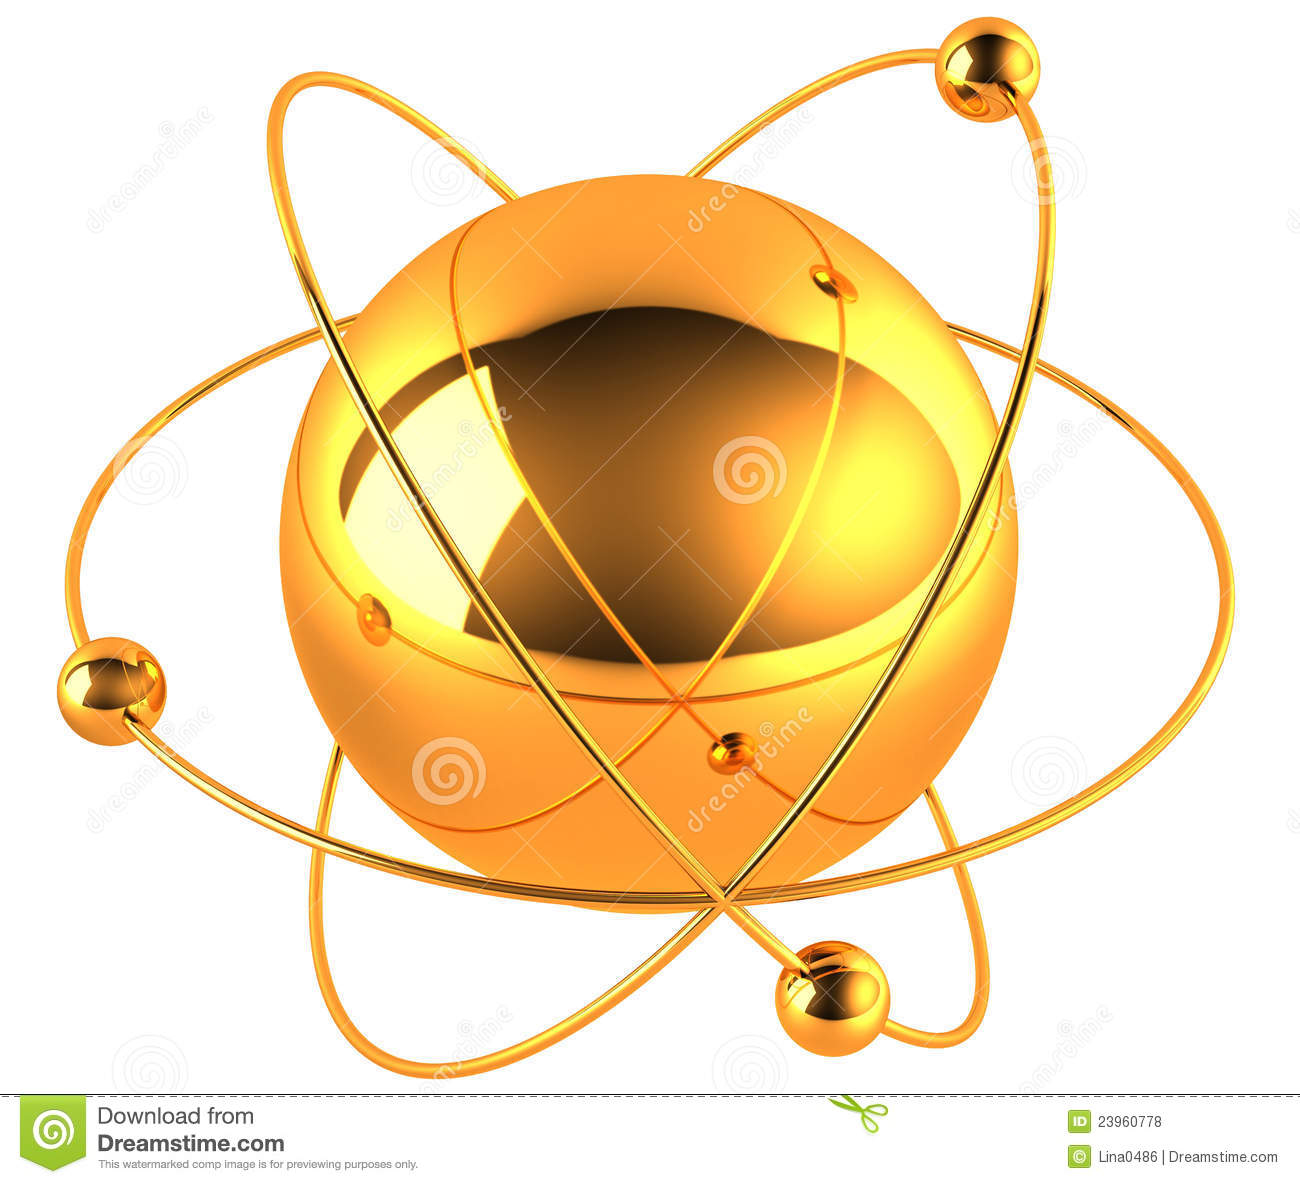 gold bohr diagram of atom access control wiring stock illustration medicine